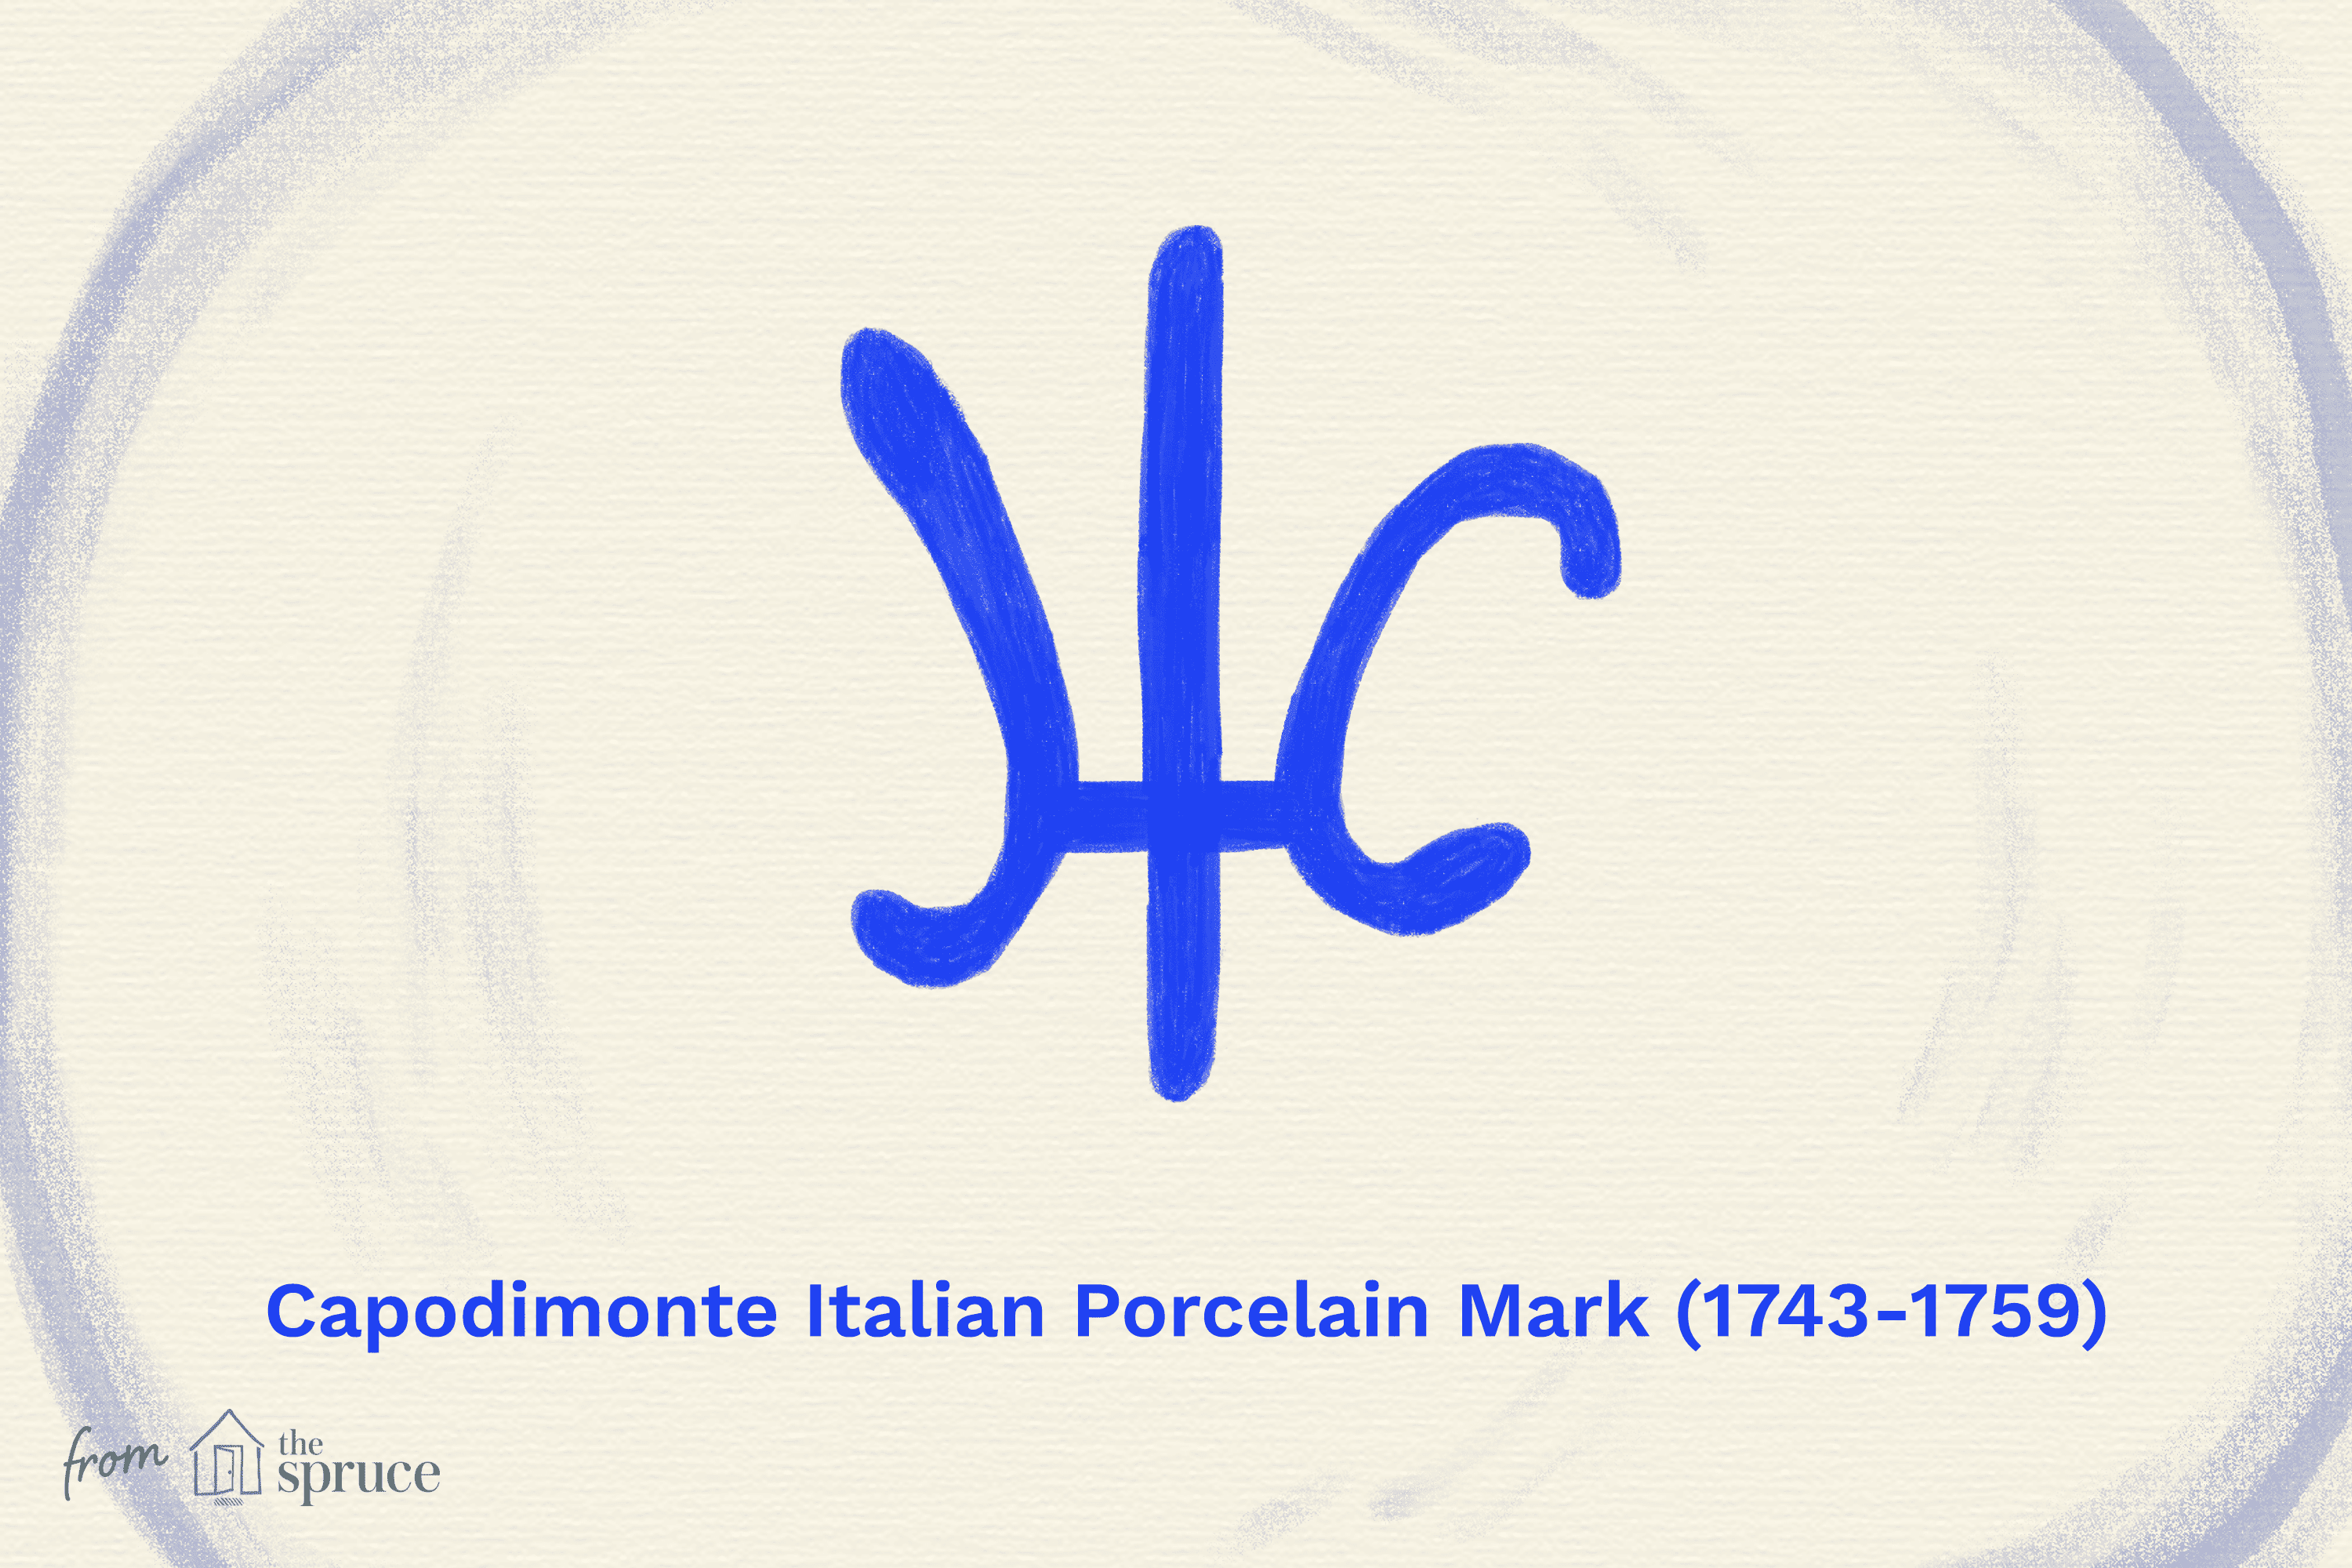 illustration of capodimonte italian porcelain mark 1743-1759